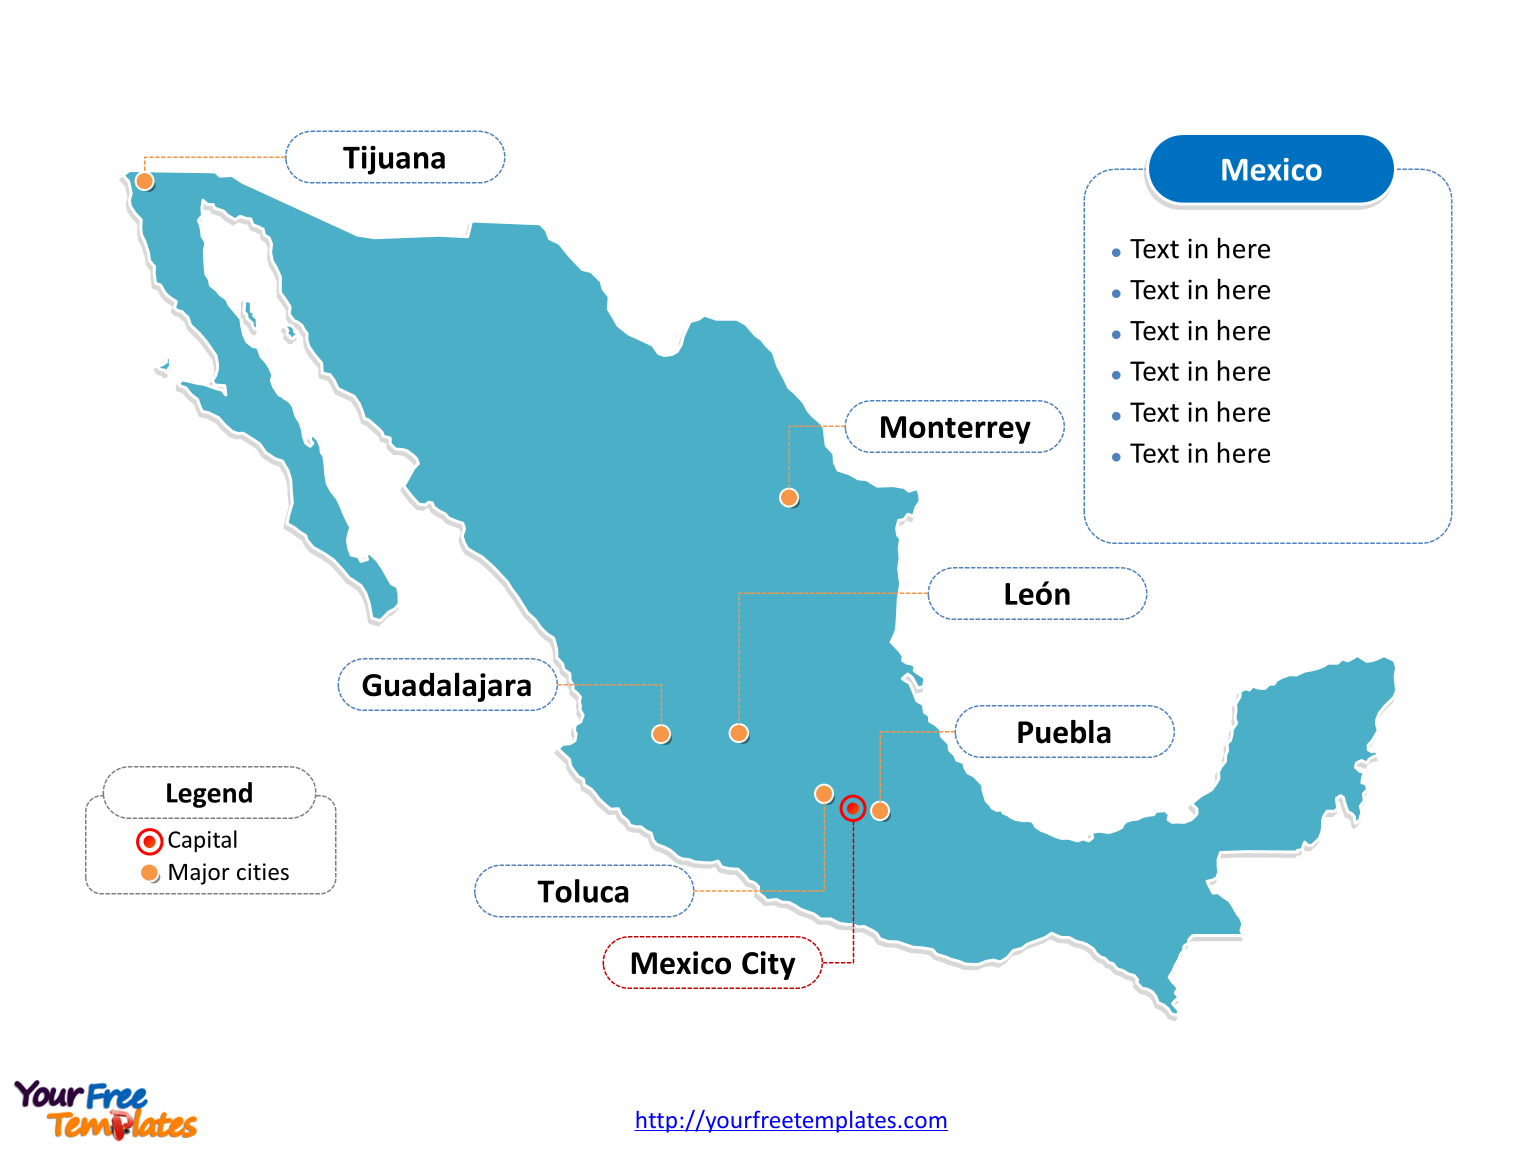 Mexico PowerPoint map label with cities